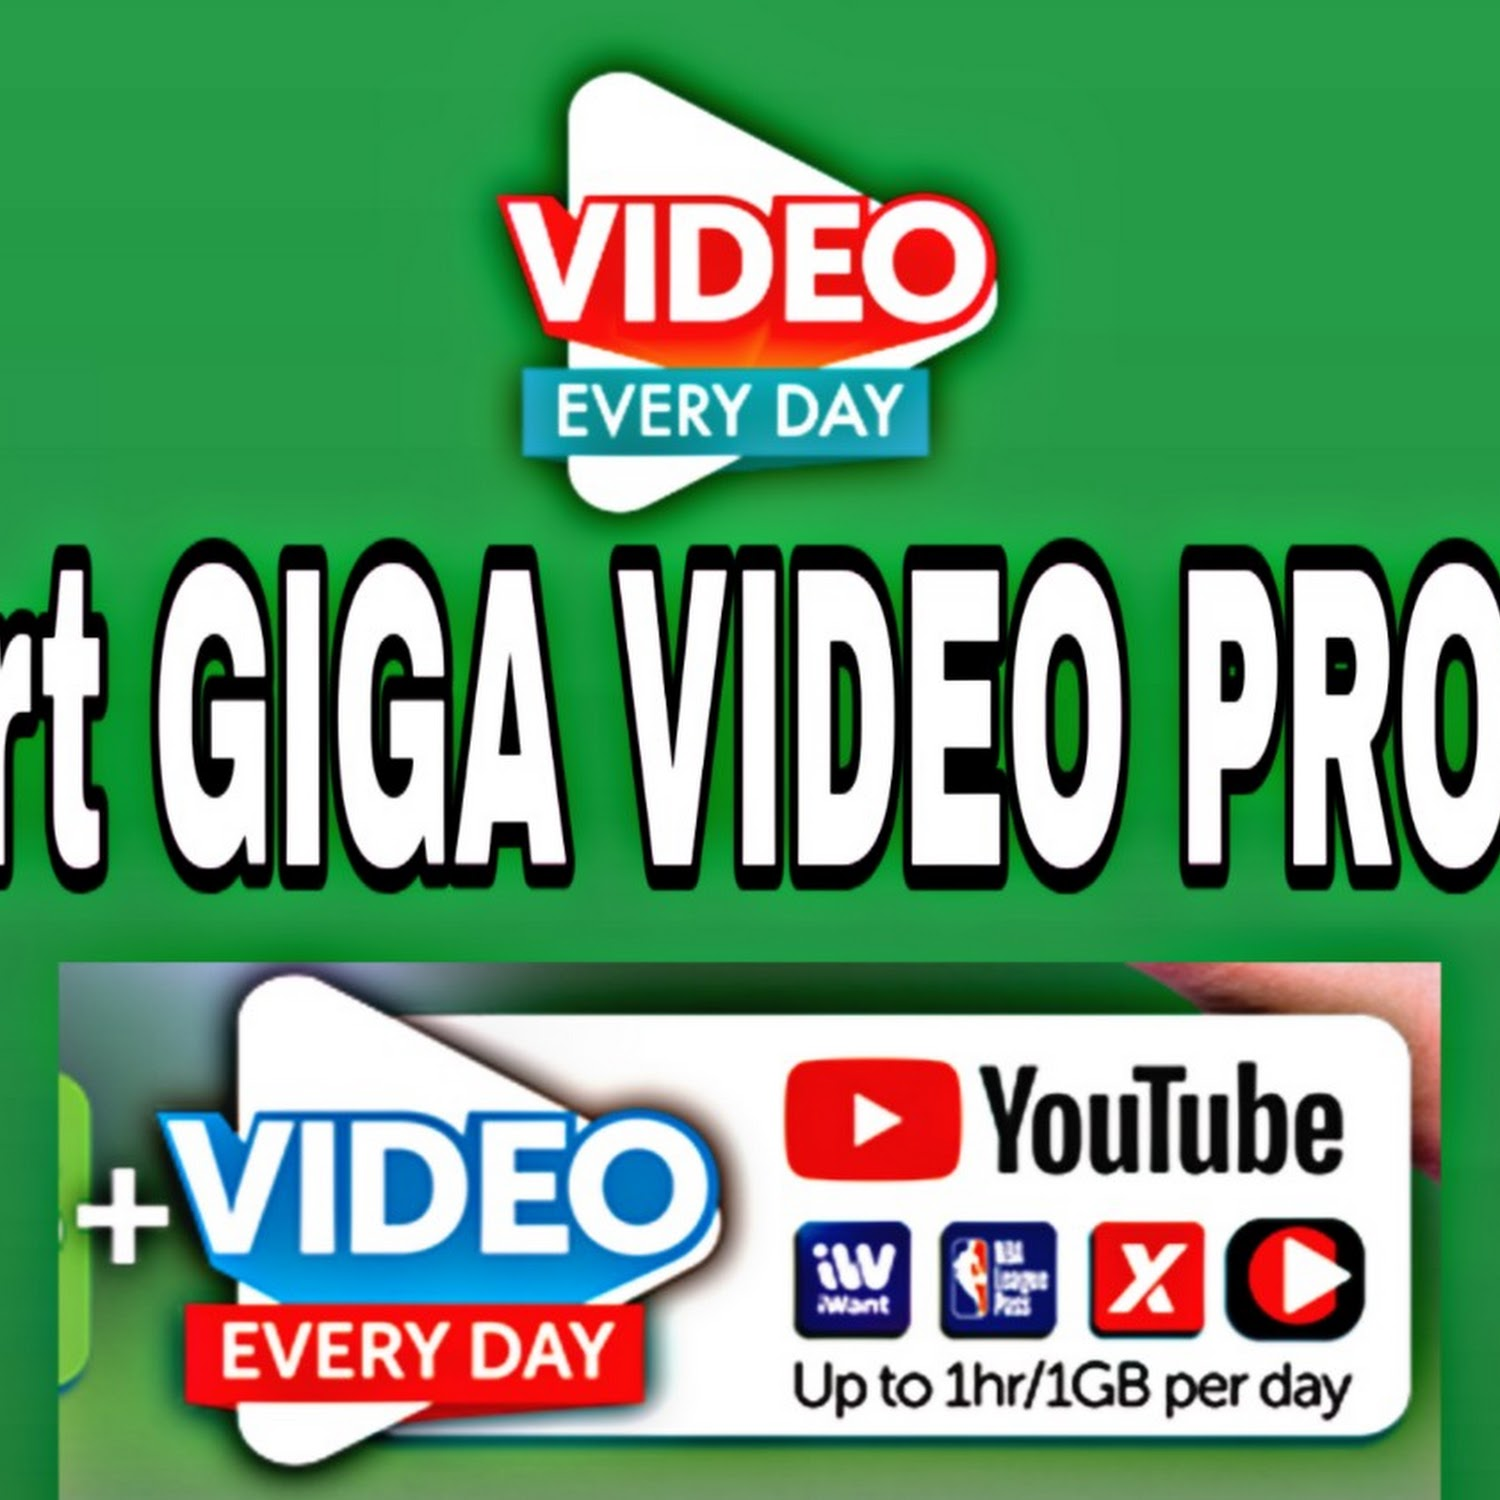 Smart GIGA VIDEO Promos: Mobile Data + Free 1GB/day Video